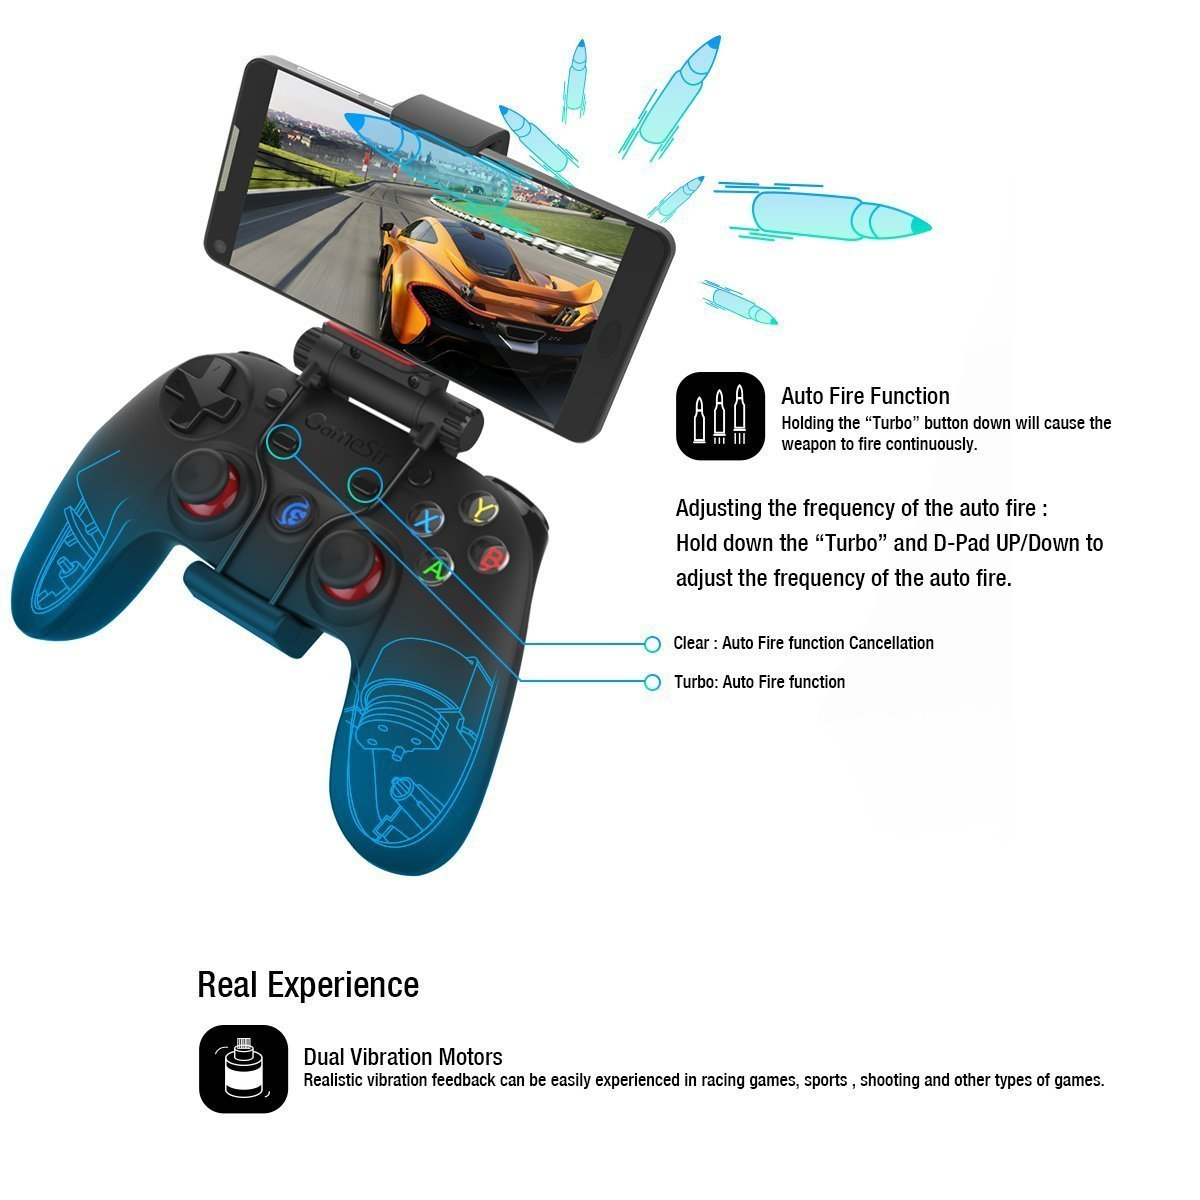 Amazon.com: G3s Wireless Gaming Controller for Switch/Windows PC/PS3 Gamepad with improved 2.4Ghz USB dongle, Bluetooth Android Controller Gamepad for ...